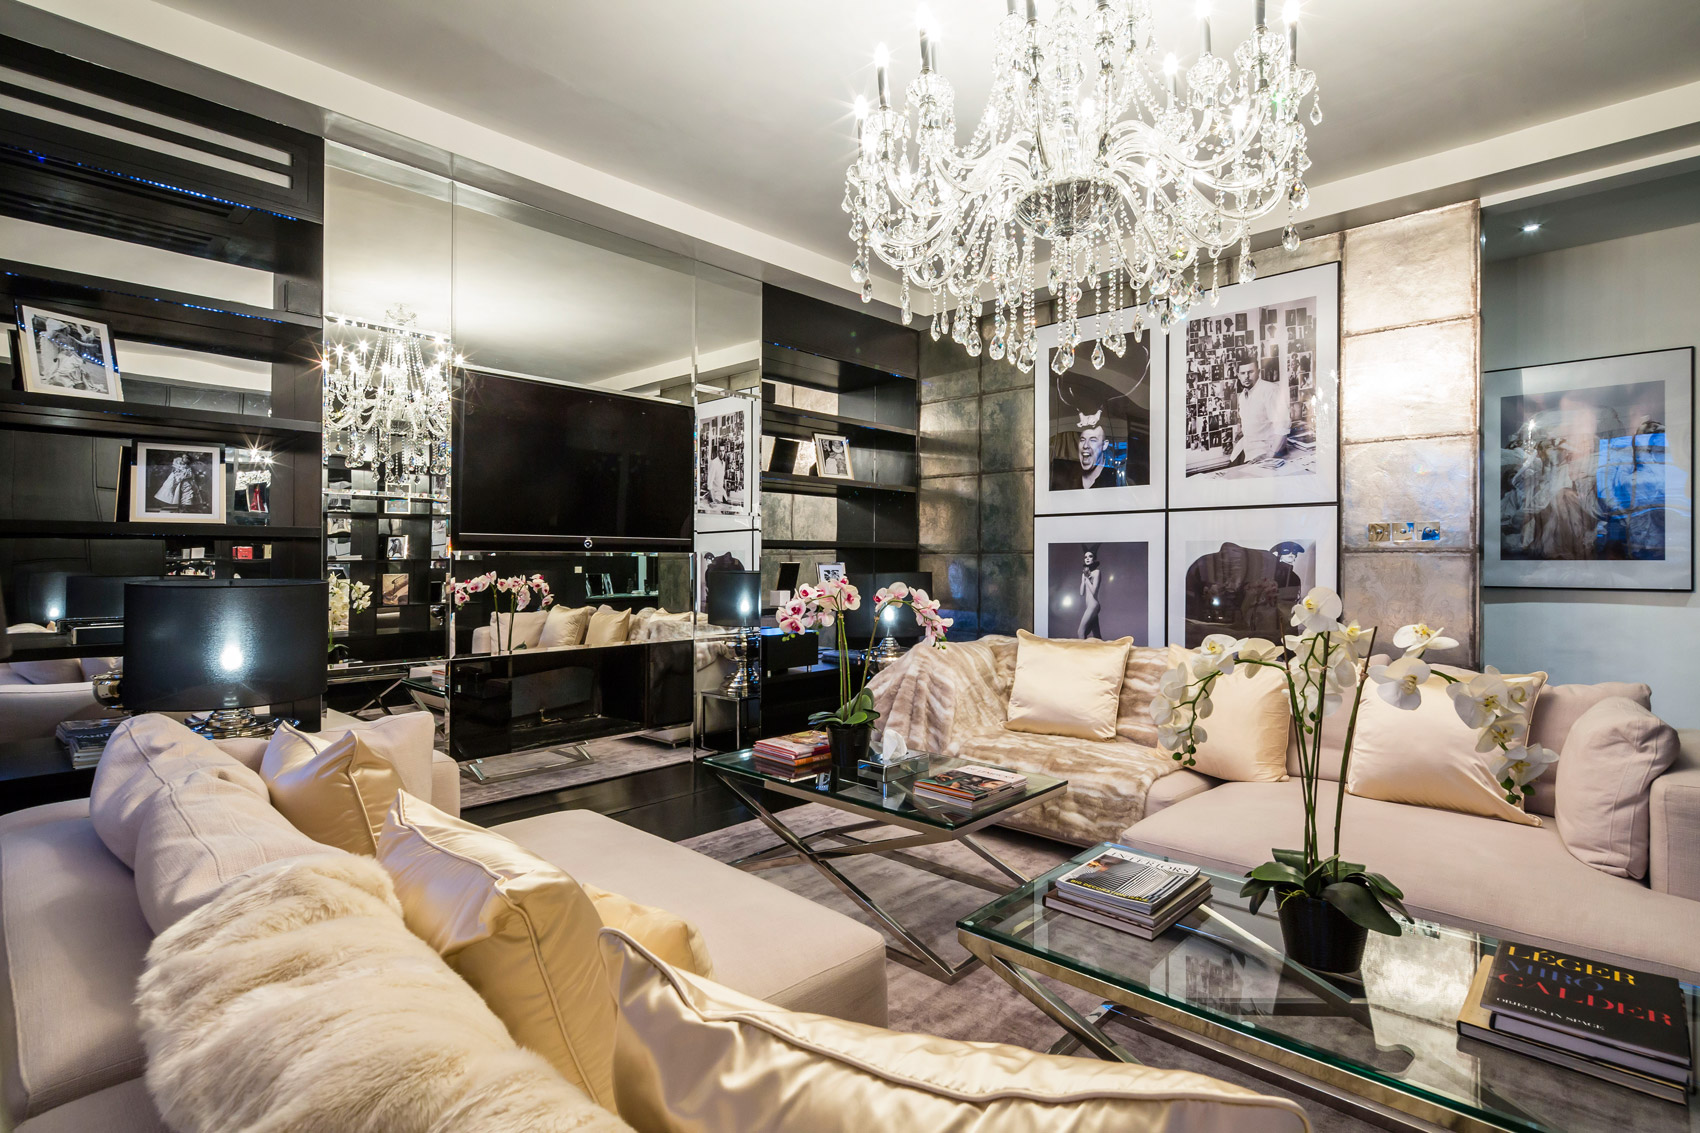 Alexander McQueen's Mayfair Pad for sale for £8.5m, provides Glam-Homage to his life & style